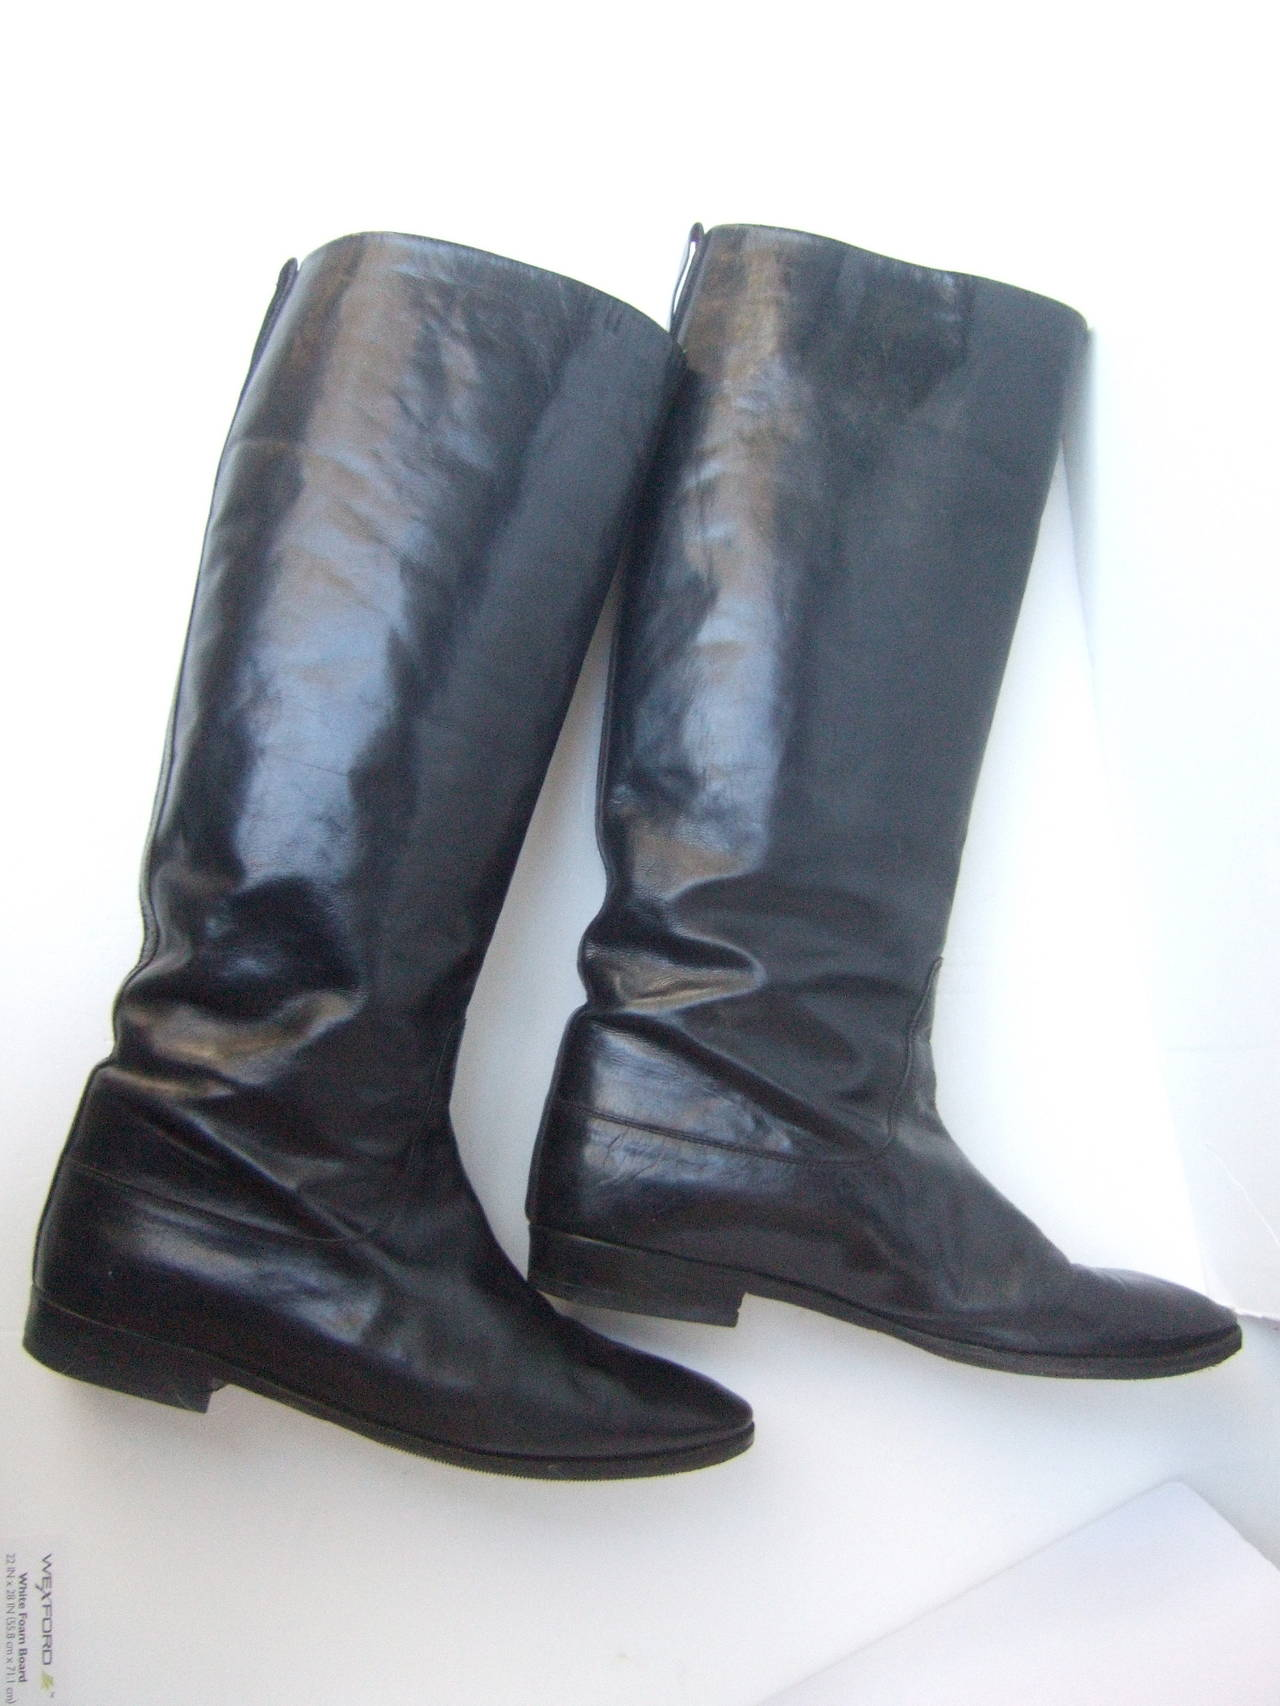 Gucci Black Leather Vintage Riding Boots c 1980s Size 38.5 8